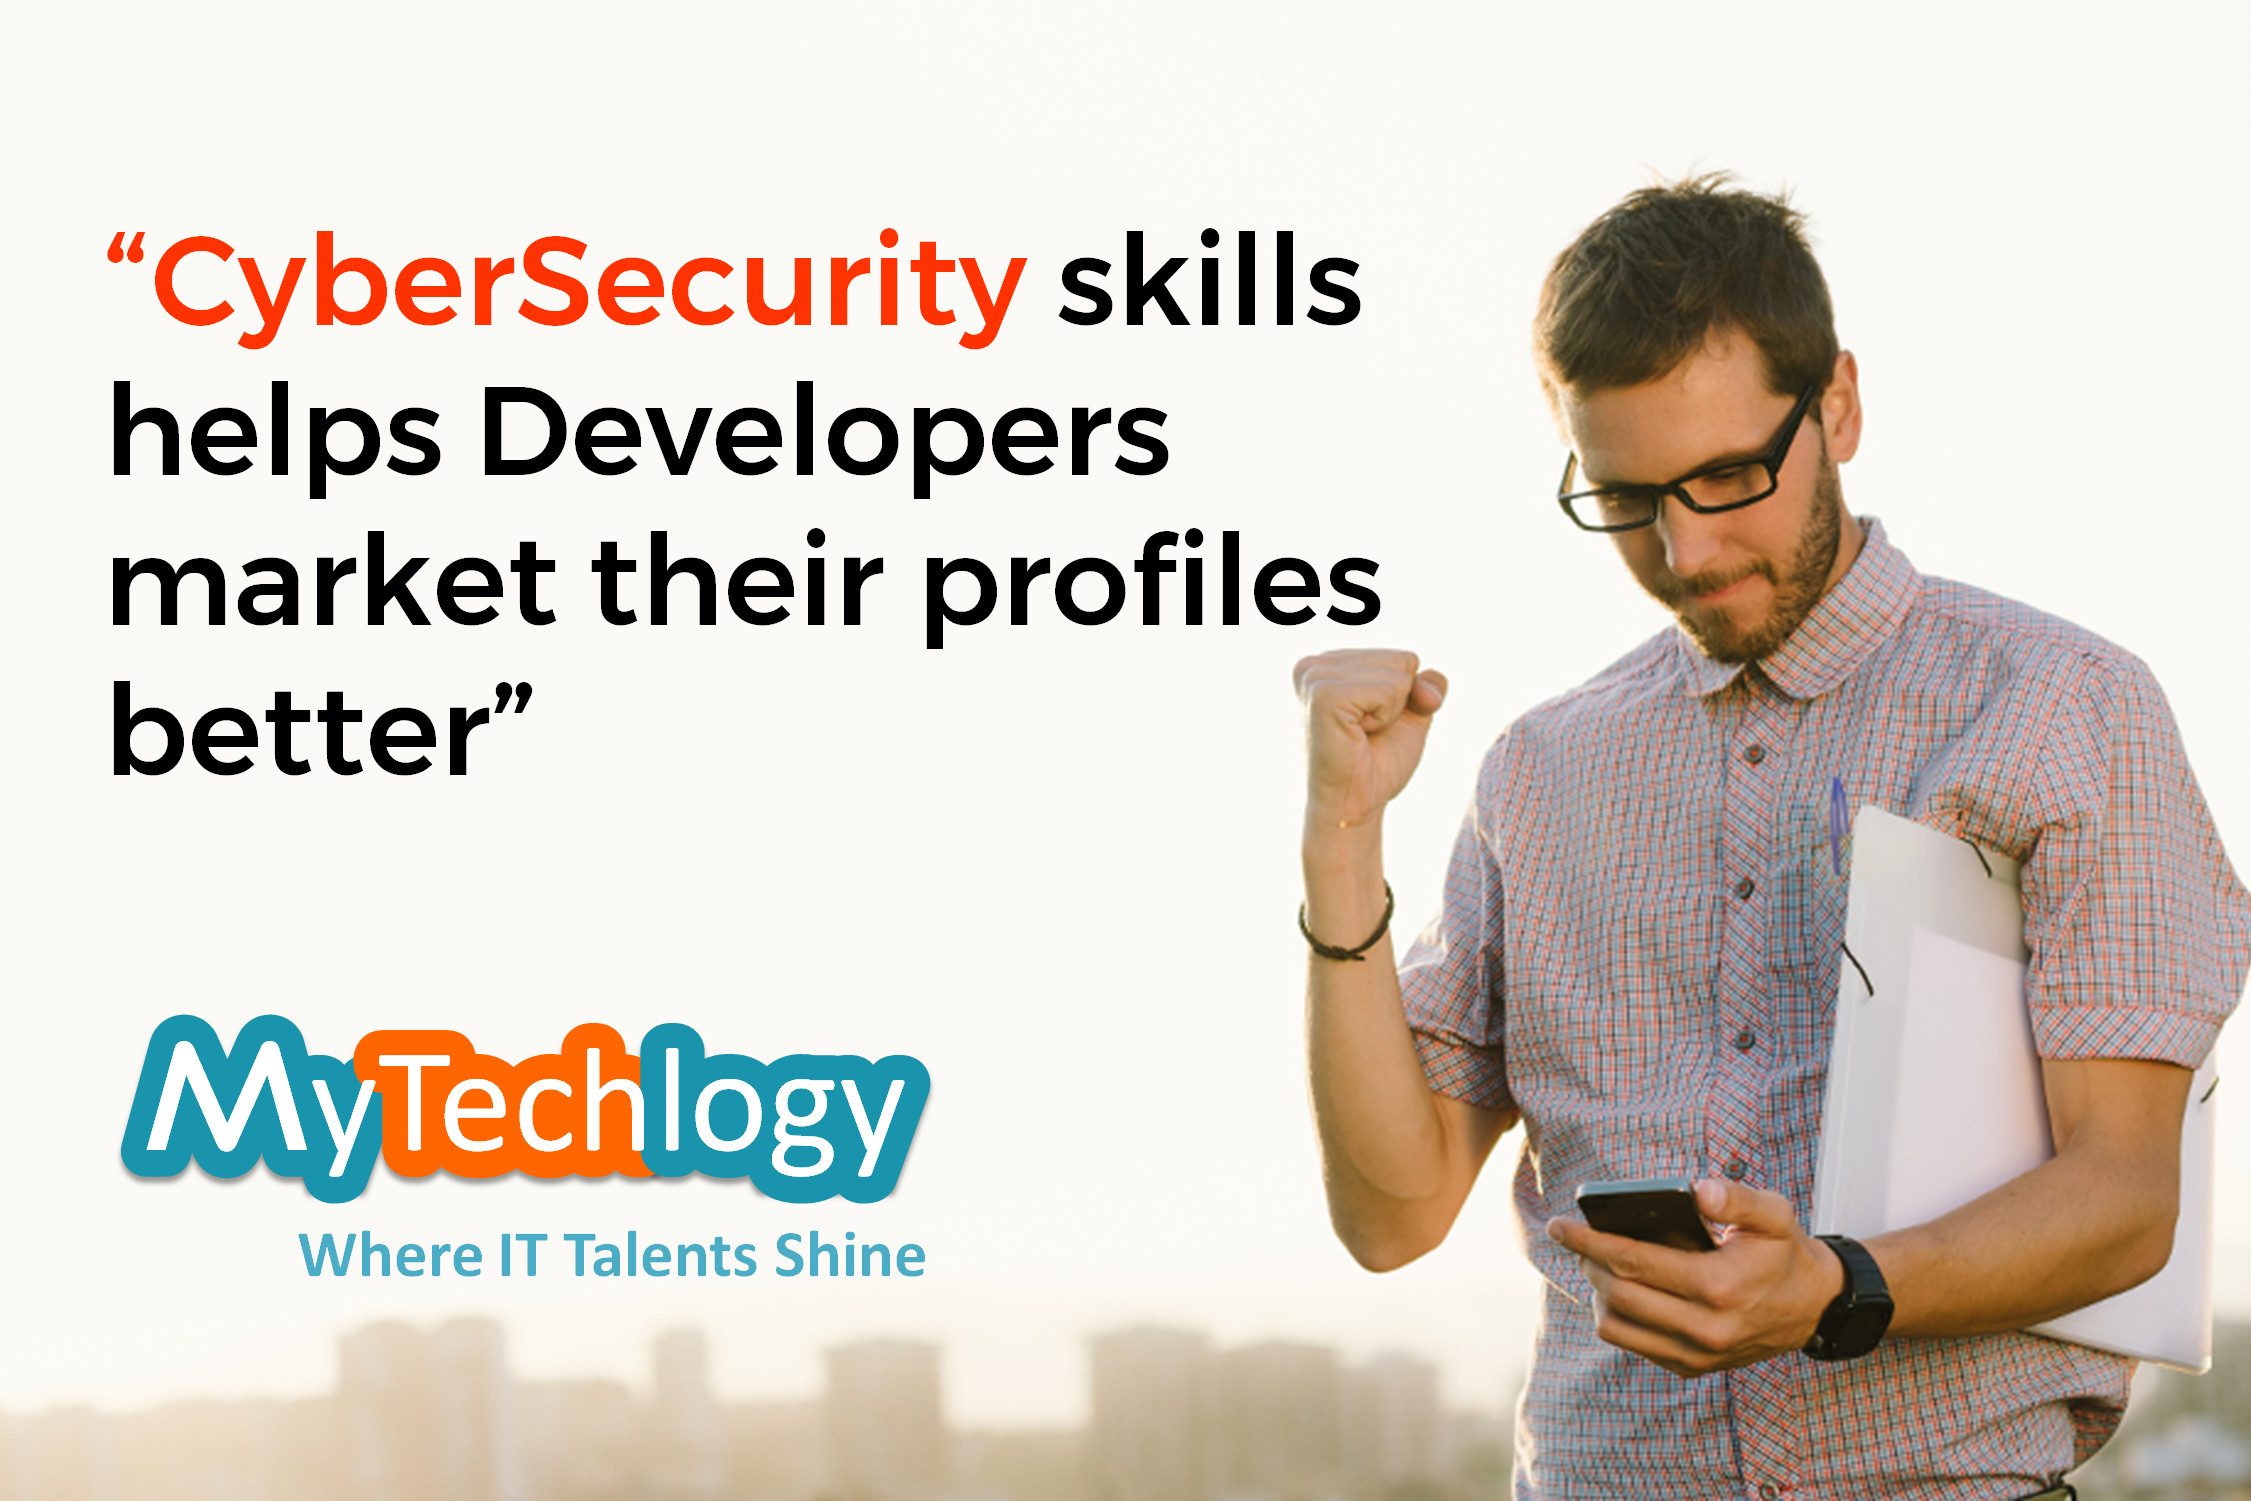 Developers Will Be More Marketable If They Add CyberSecurity To Their Skill-Set - Image 1